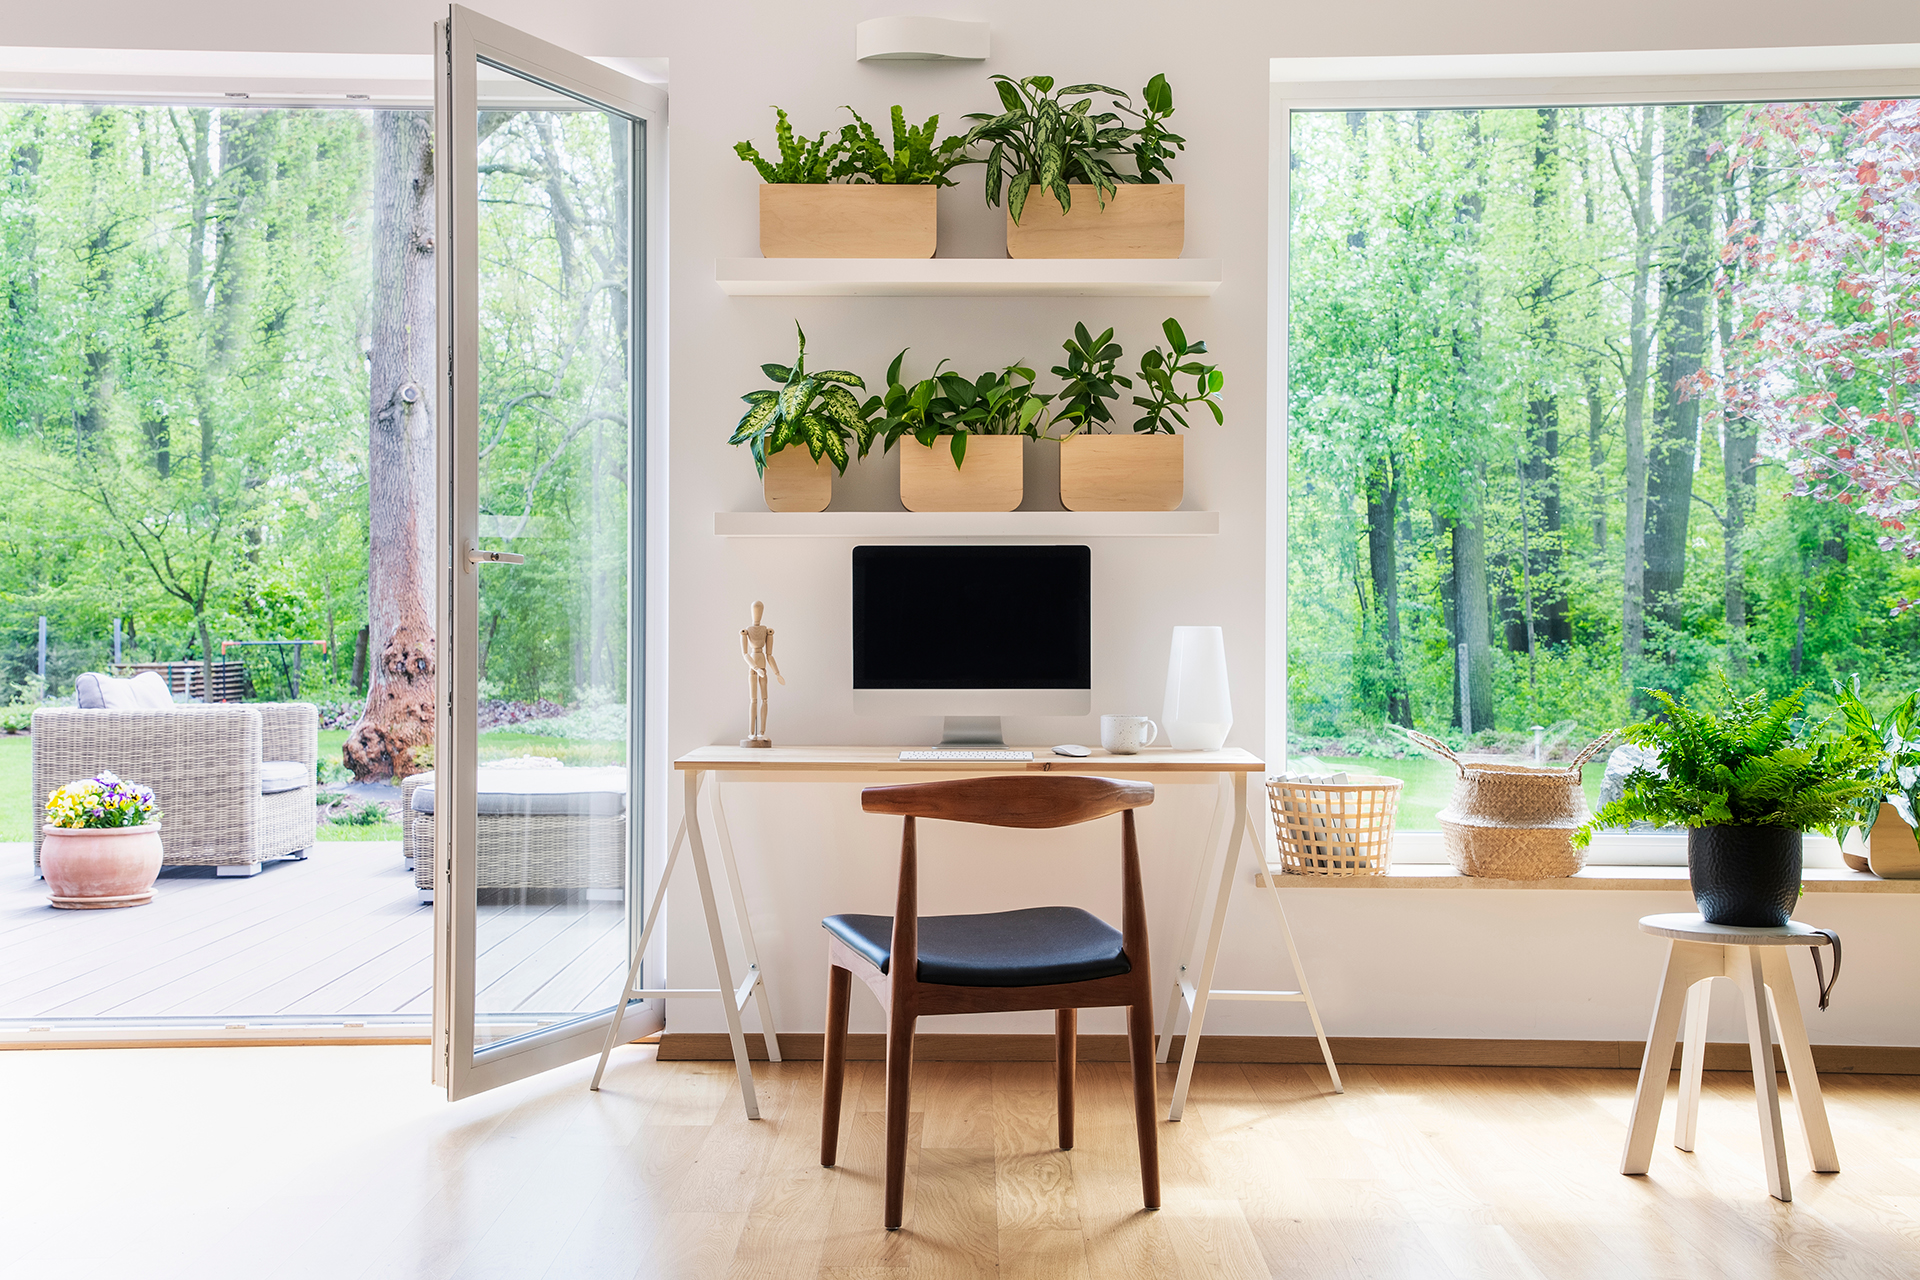 In the center of a bright, airy room is a computer. Above the computer are big shelves full of potted plants. To the left of the computer is a wide-open glass door leading to a beautiful green patio. To the right, are huge windows with views of the backyard and trees.